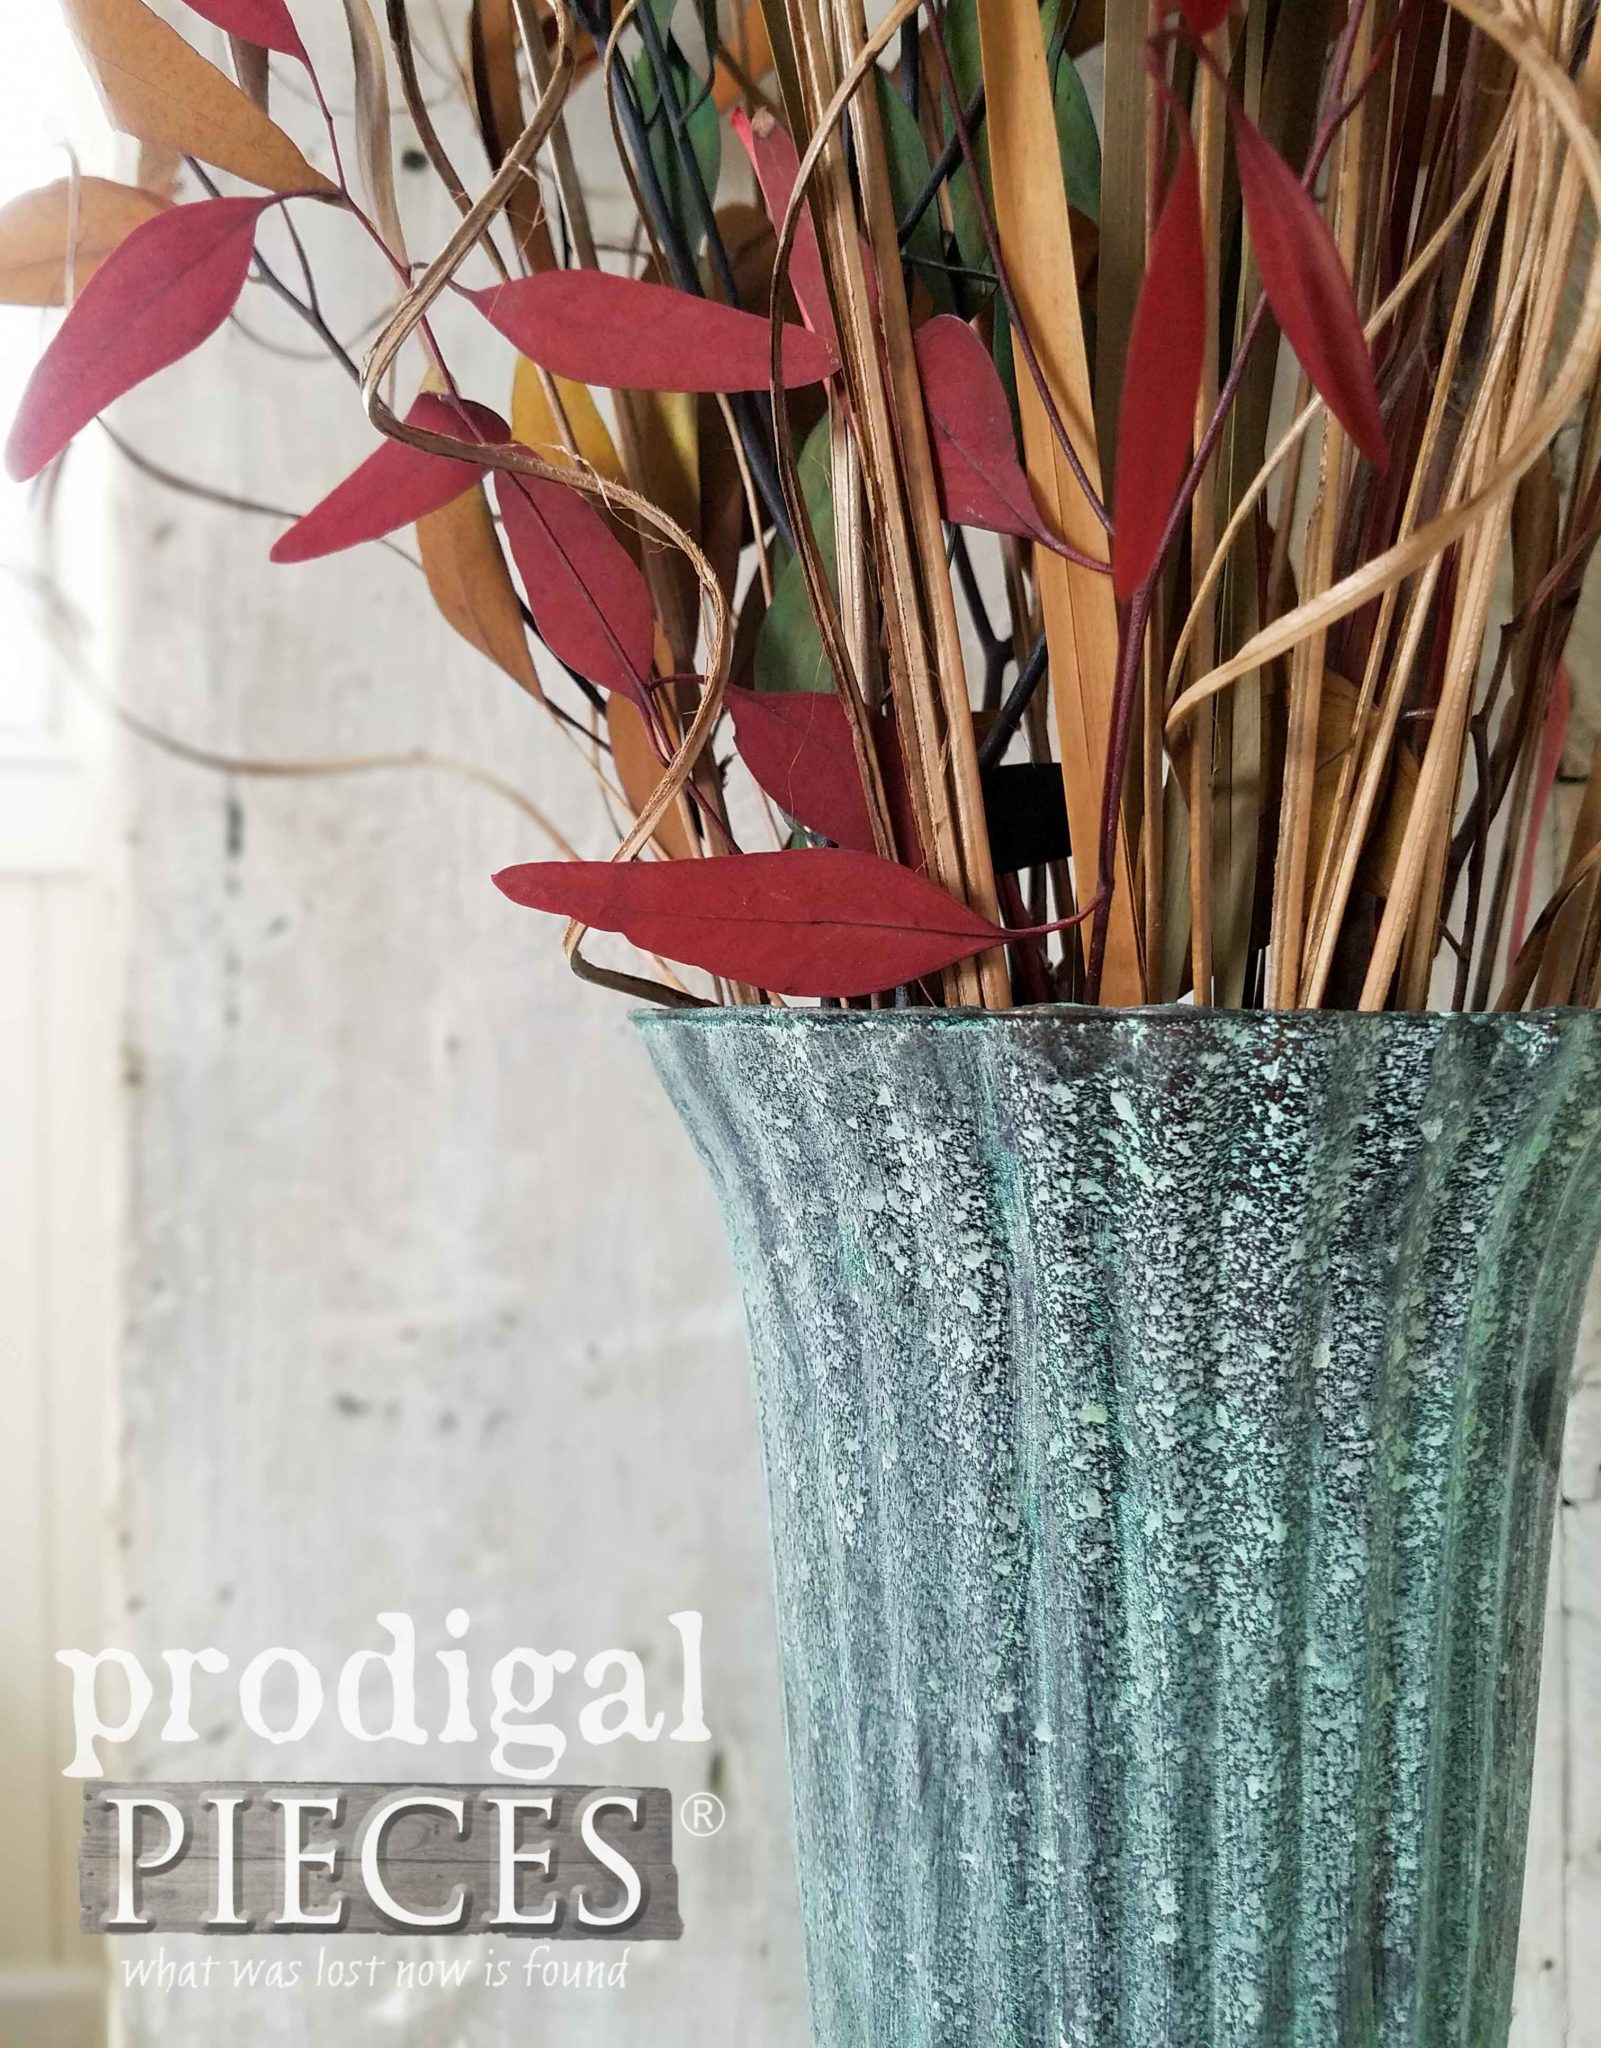 Bronze Patina Paint with Green Patina on Glass Vase by Larissa of Prodigal Pieces | DIY details at prodigalpieces.com